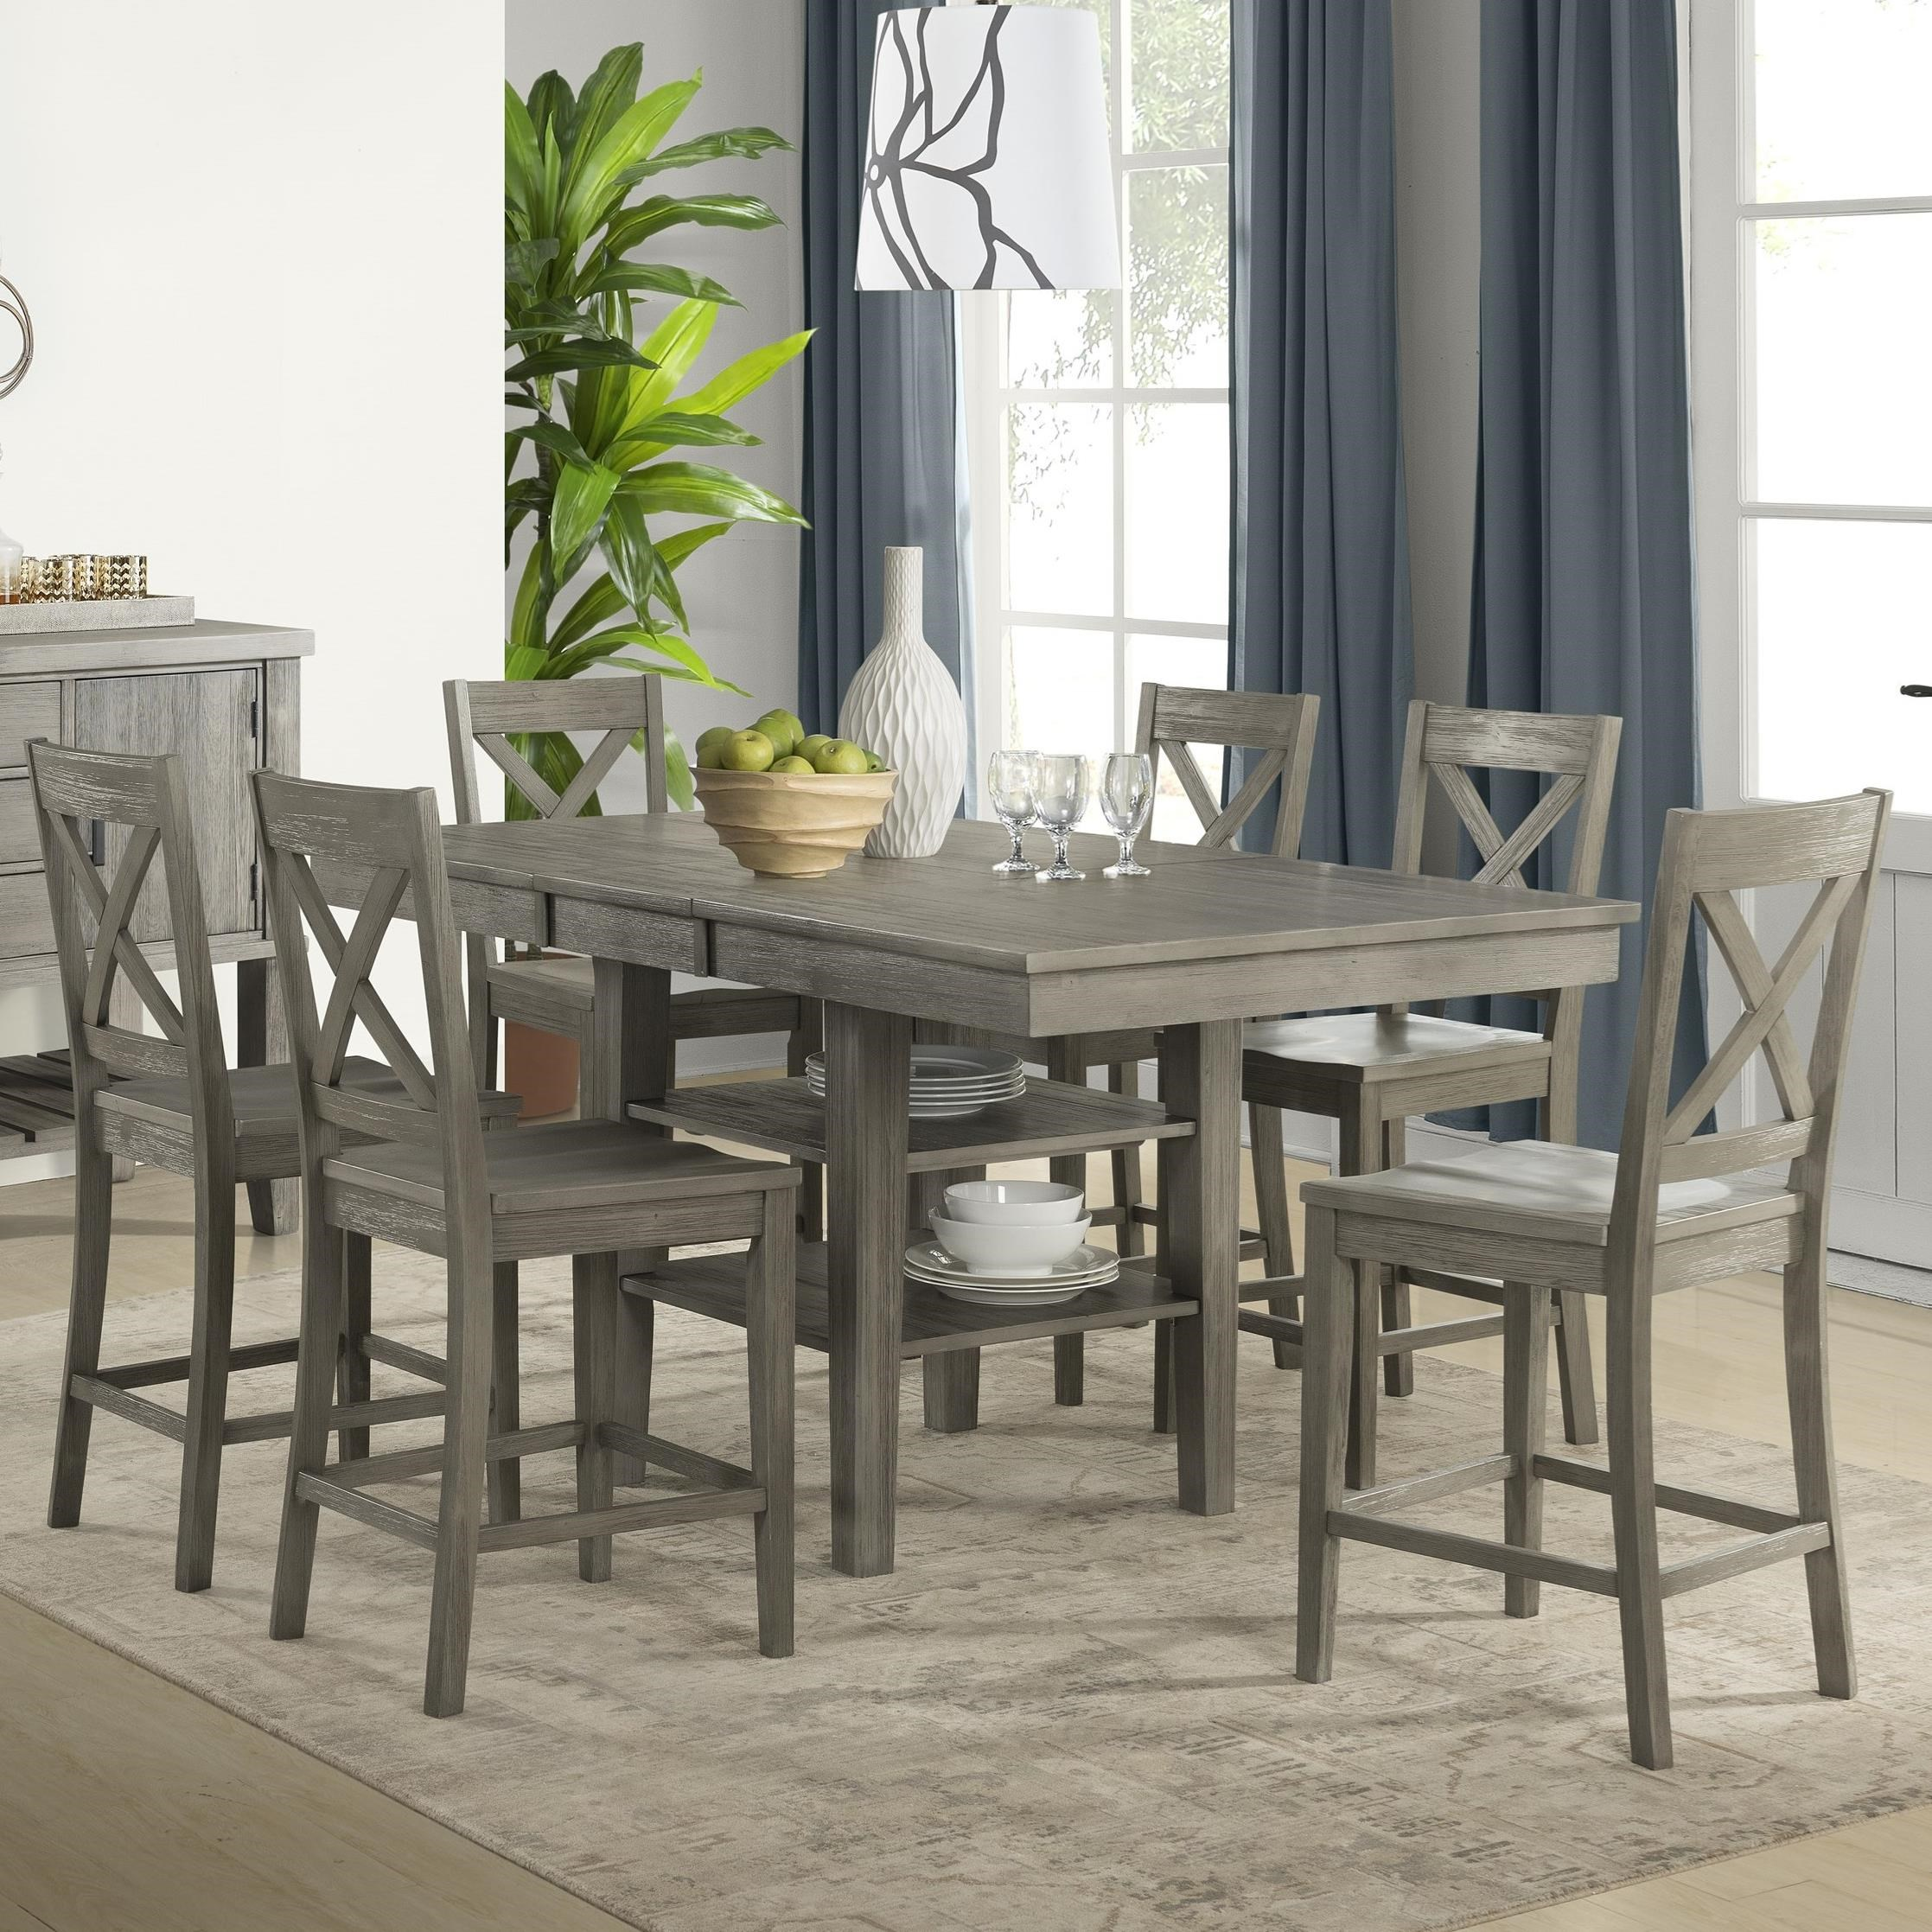 Huron Transitional Counter Height Table and Chair  by A-A at Walker's Furniture